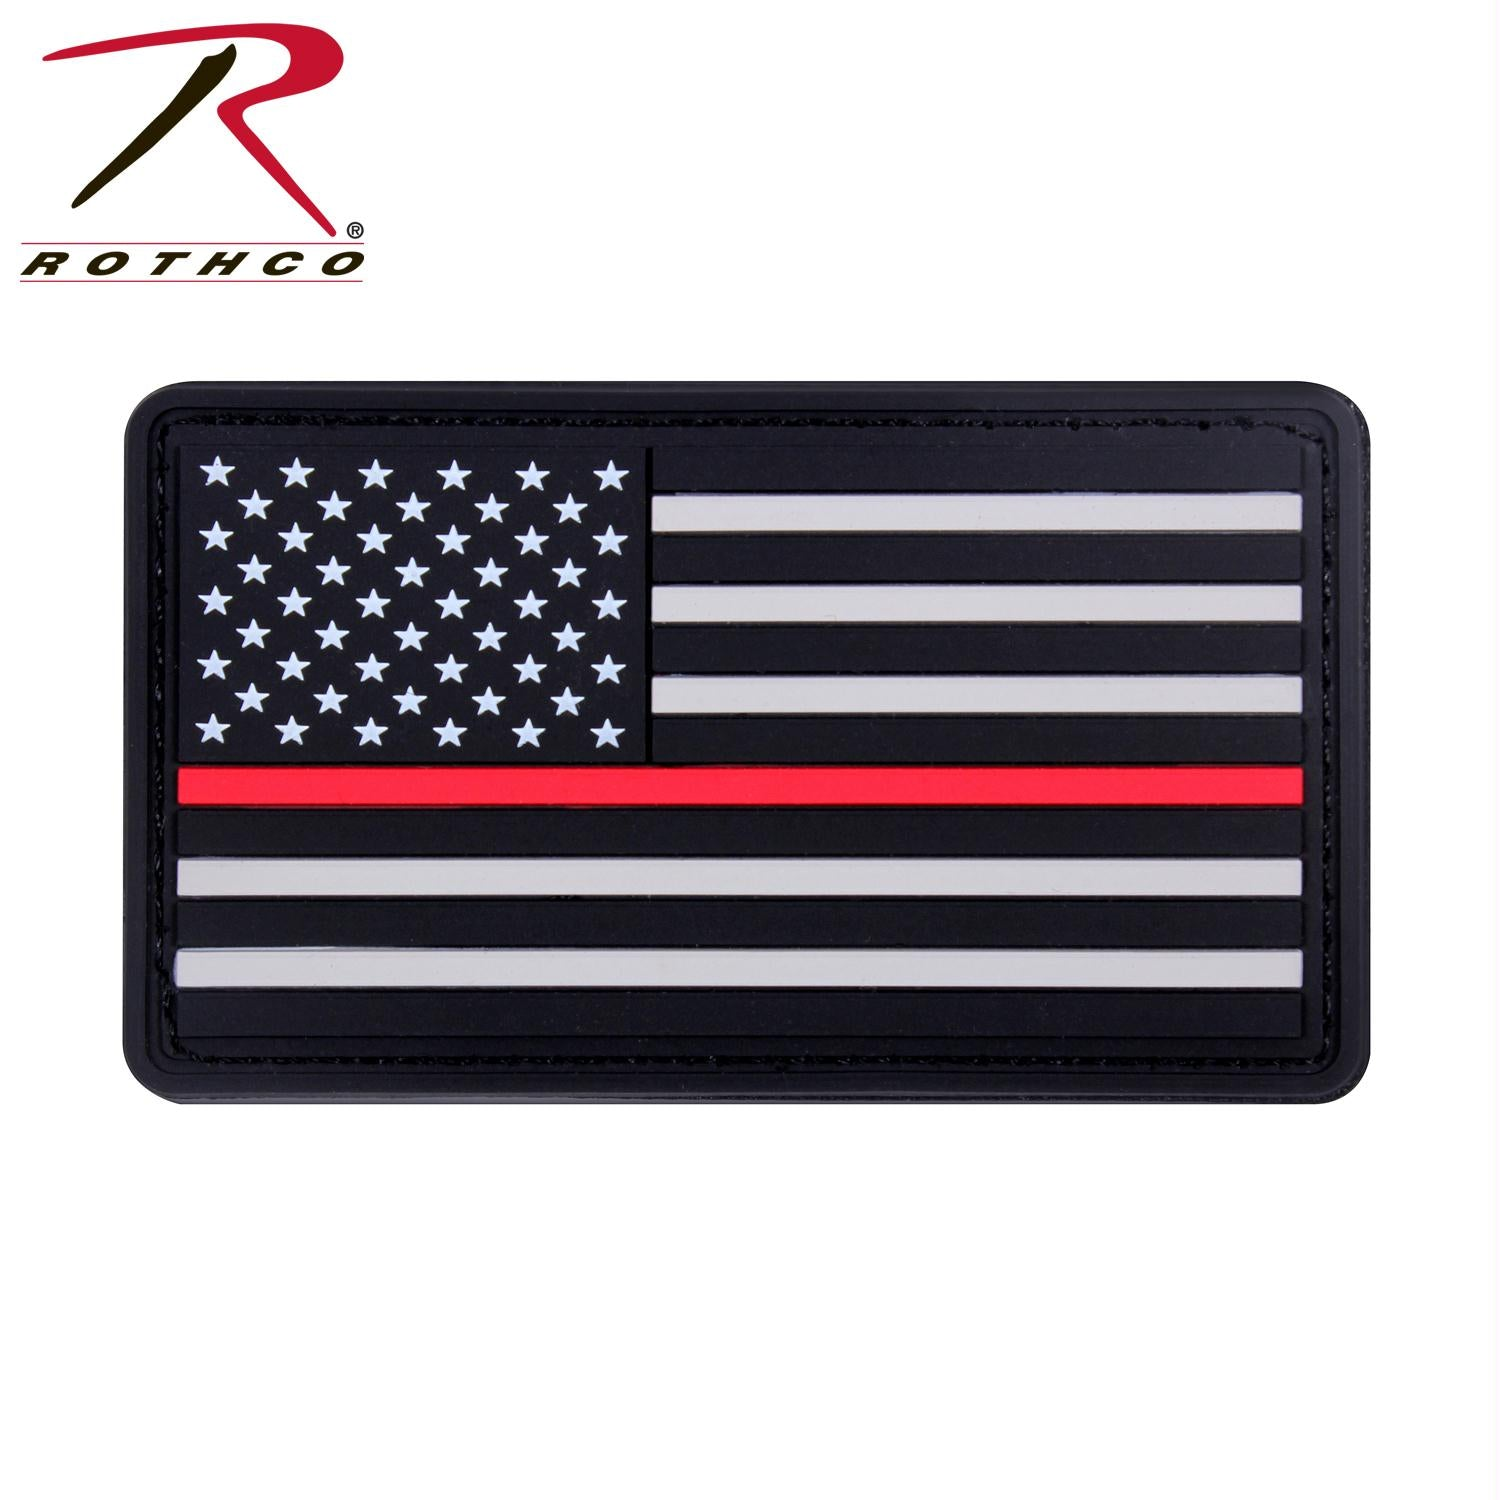 Rothco Rubber Thin Red Line Flag Patch - Black / Red / One Size